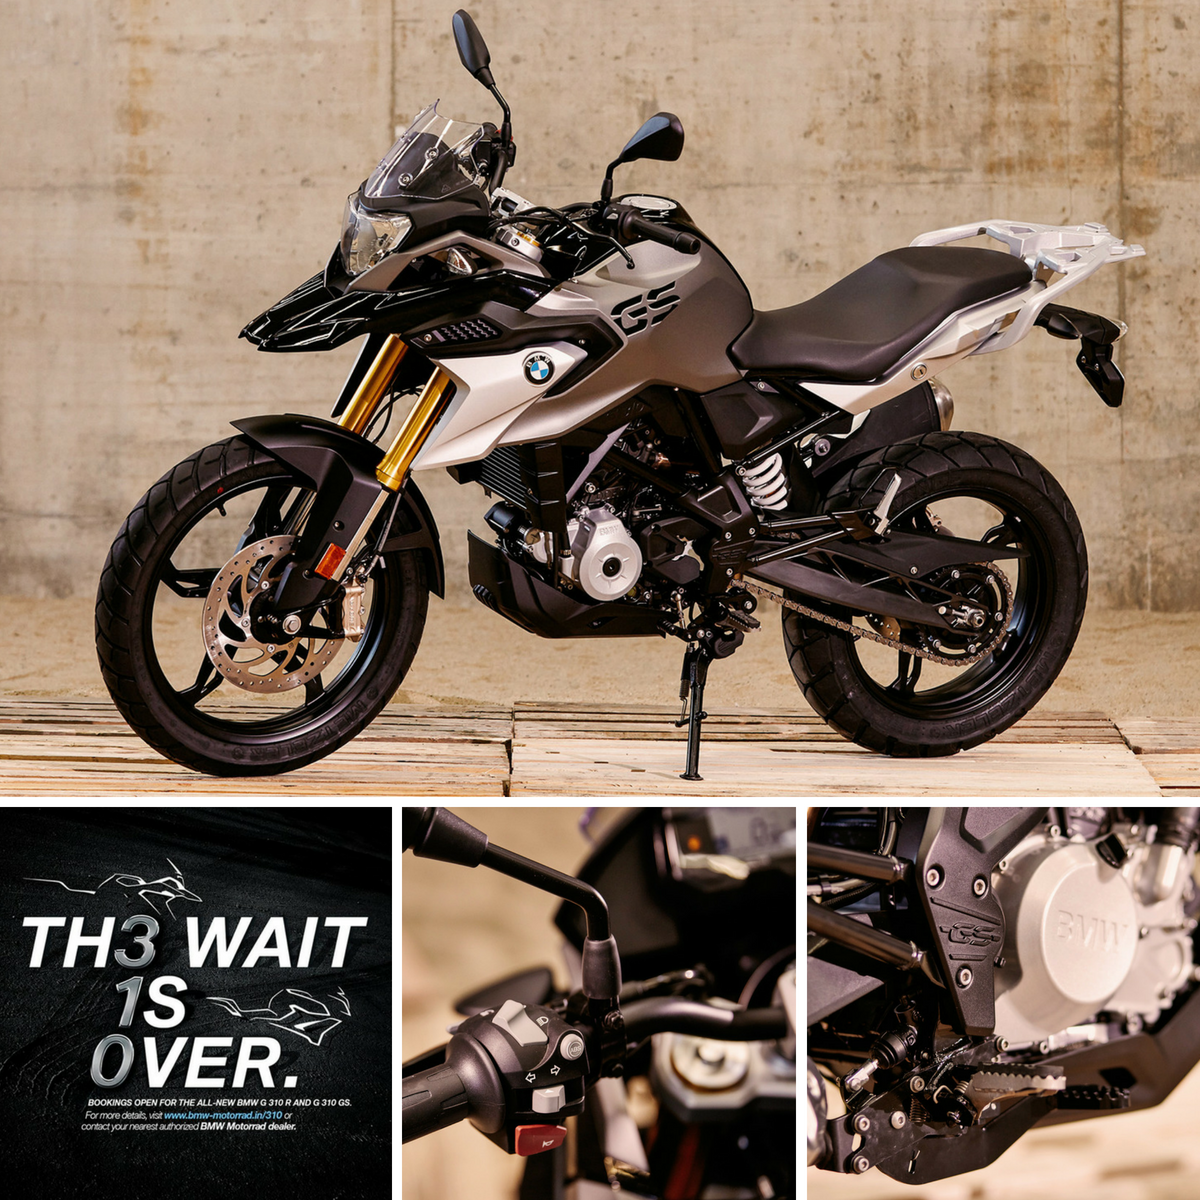 Bmw G 310 R G 310 Gs Pre Bookings To Open In India Priced At Rs 50000 Bmw Cool Bikes Moto Bike